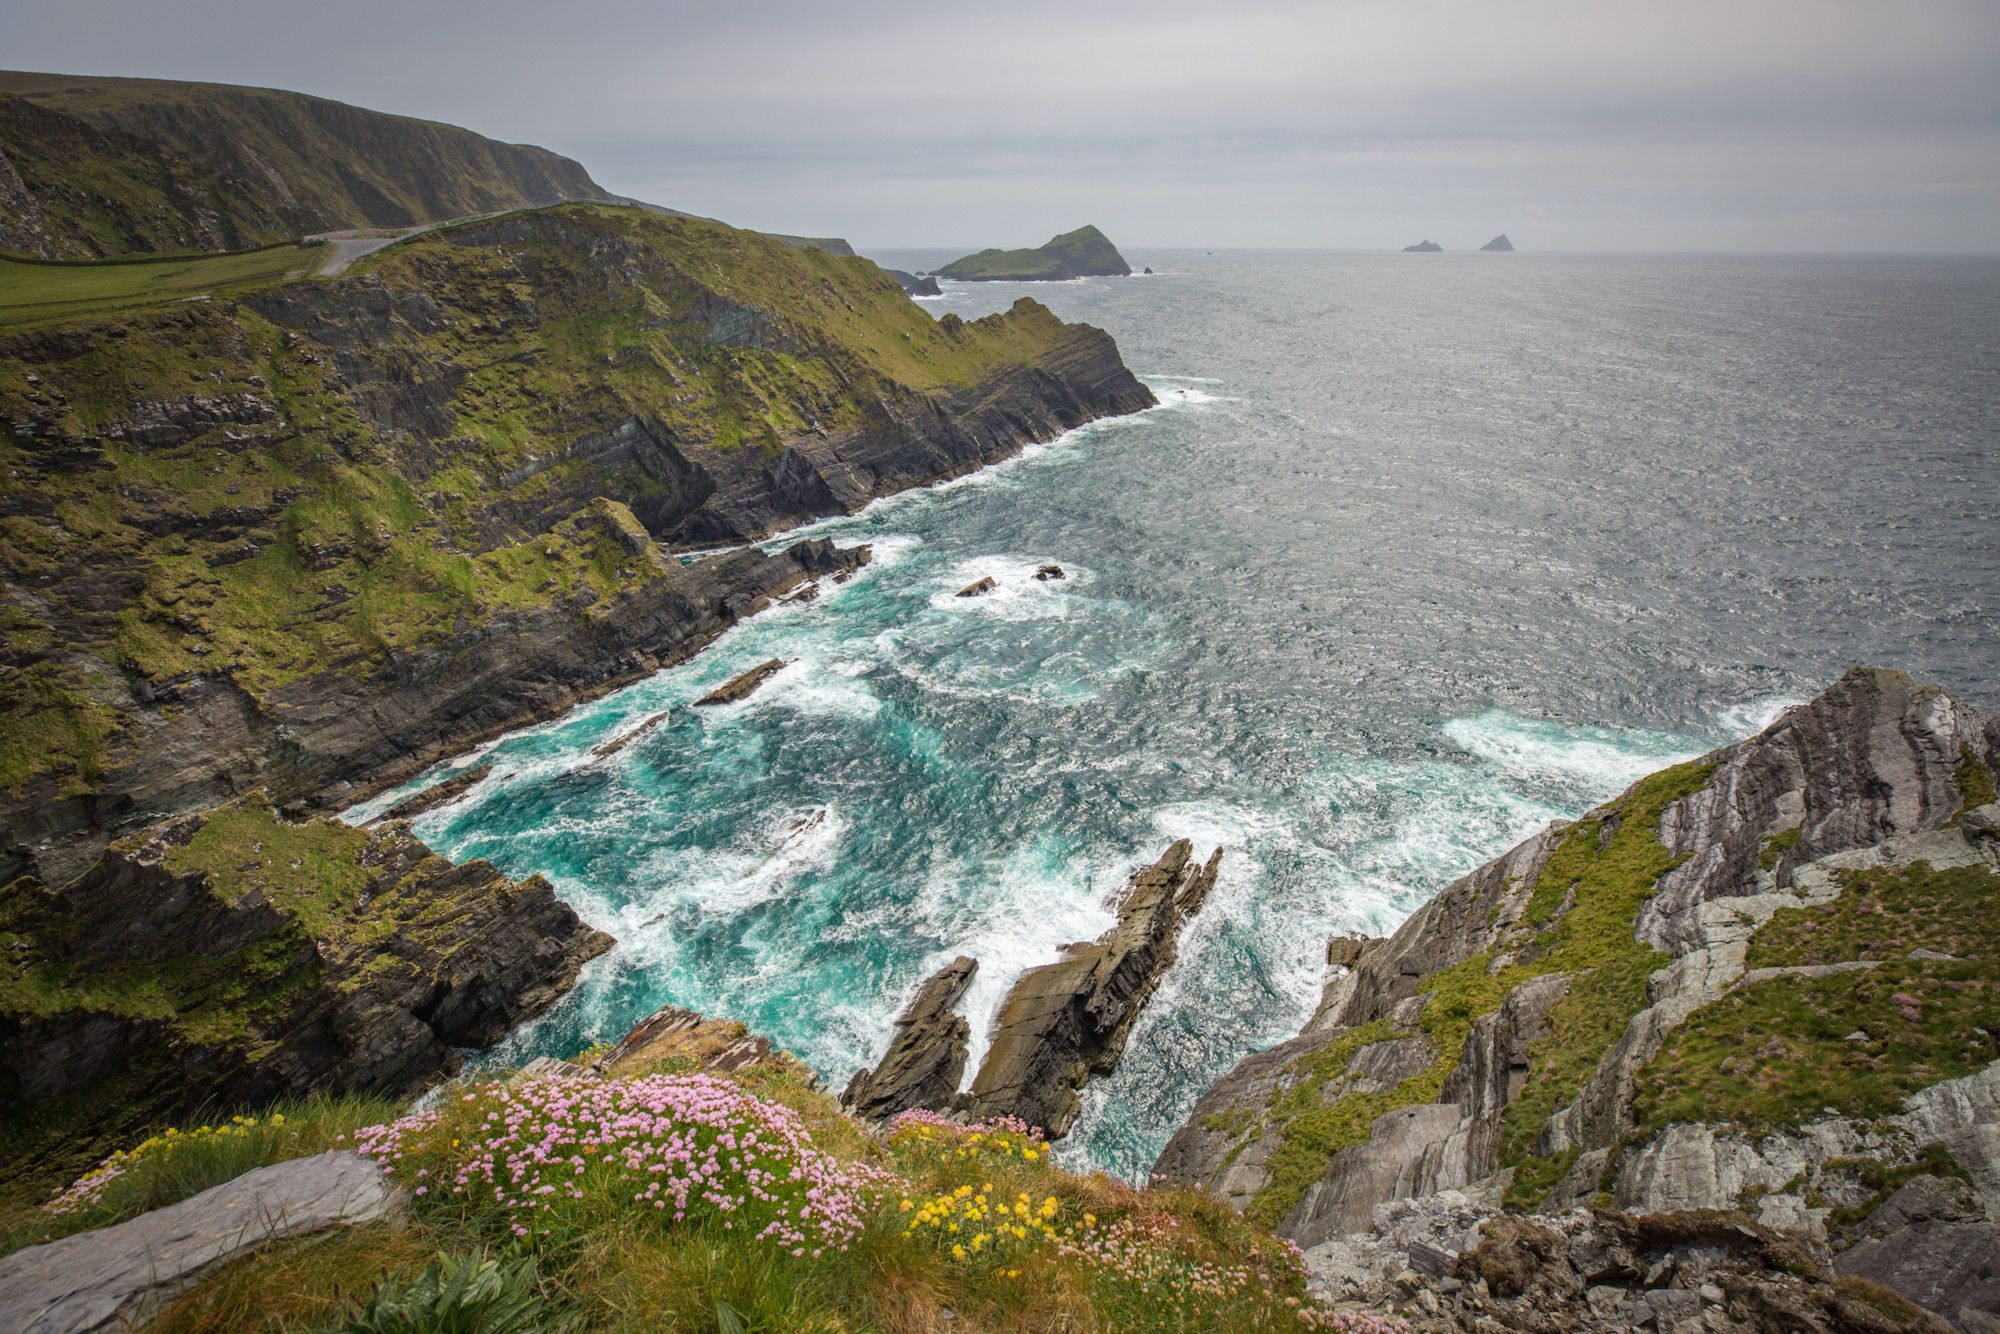 Visit Ireland - Check out the Young Adventuress's favorite 22 photos from a two week road trip around Ireland and Northern Ireland for some travel inspiration.